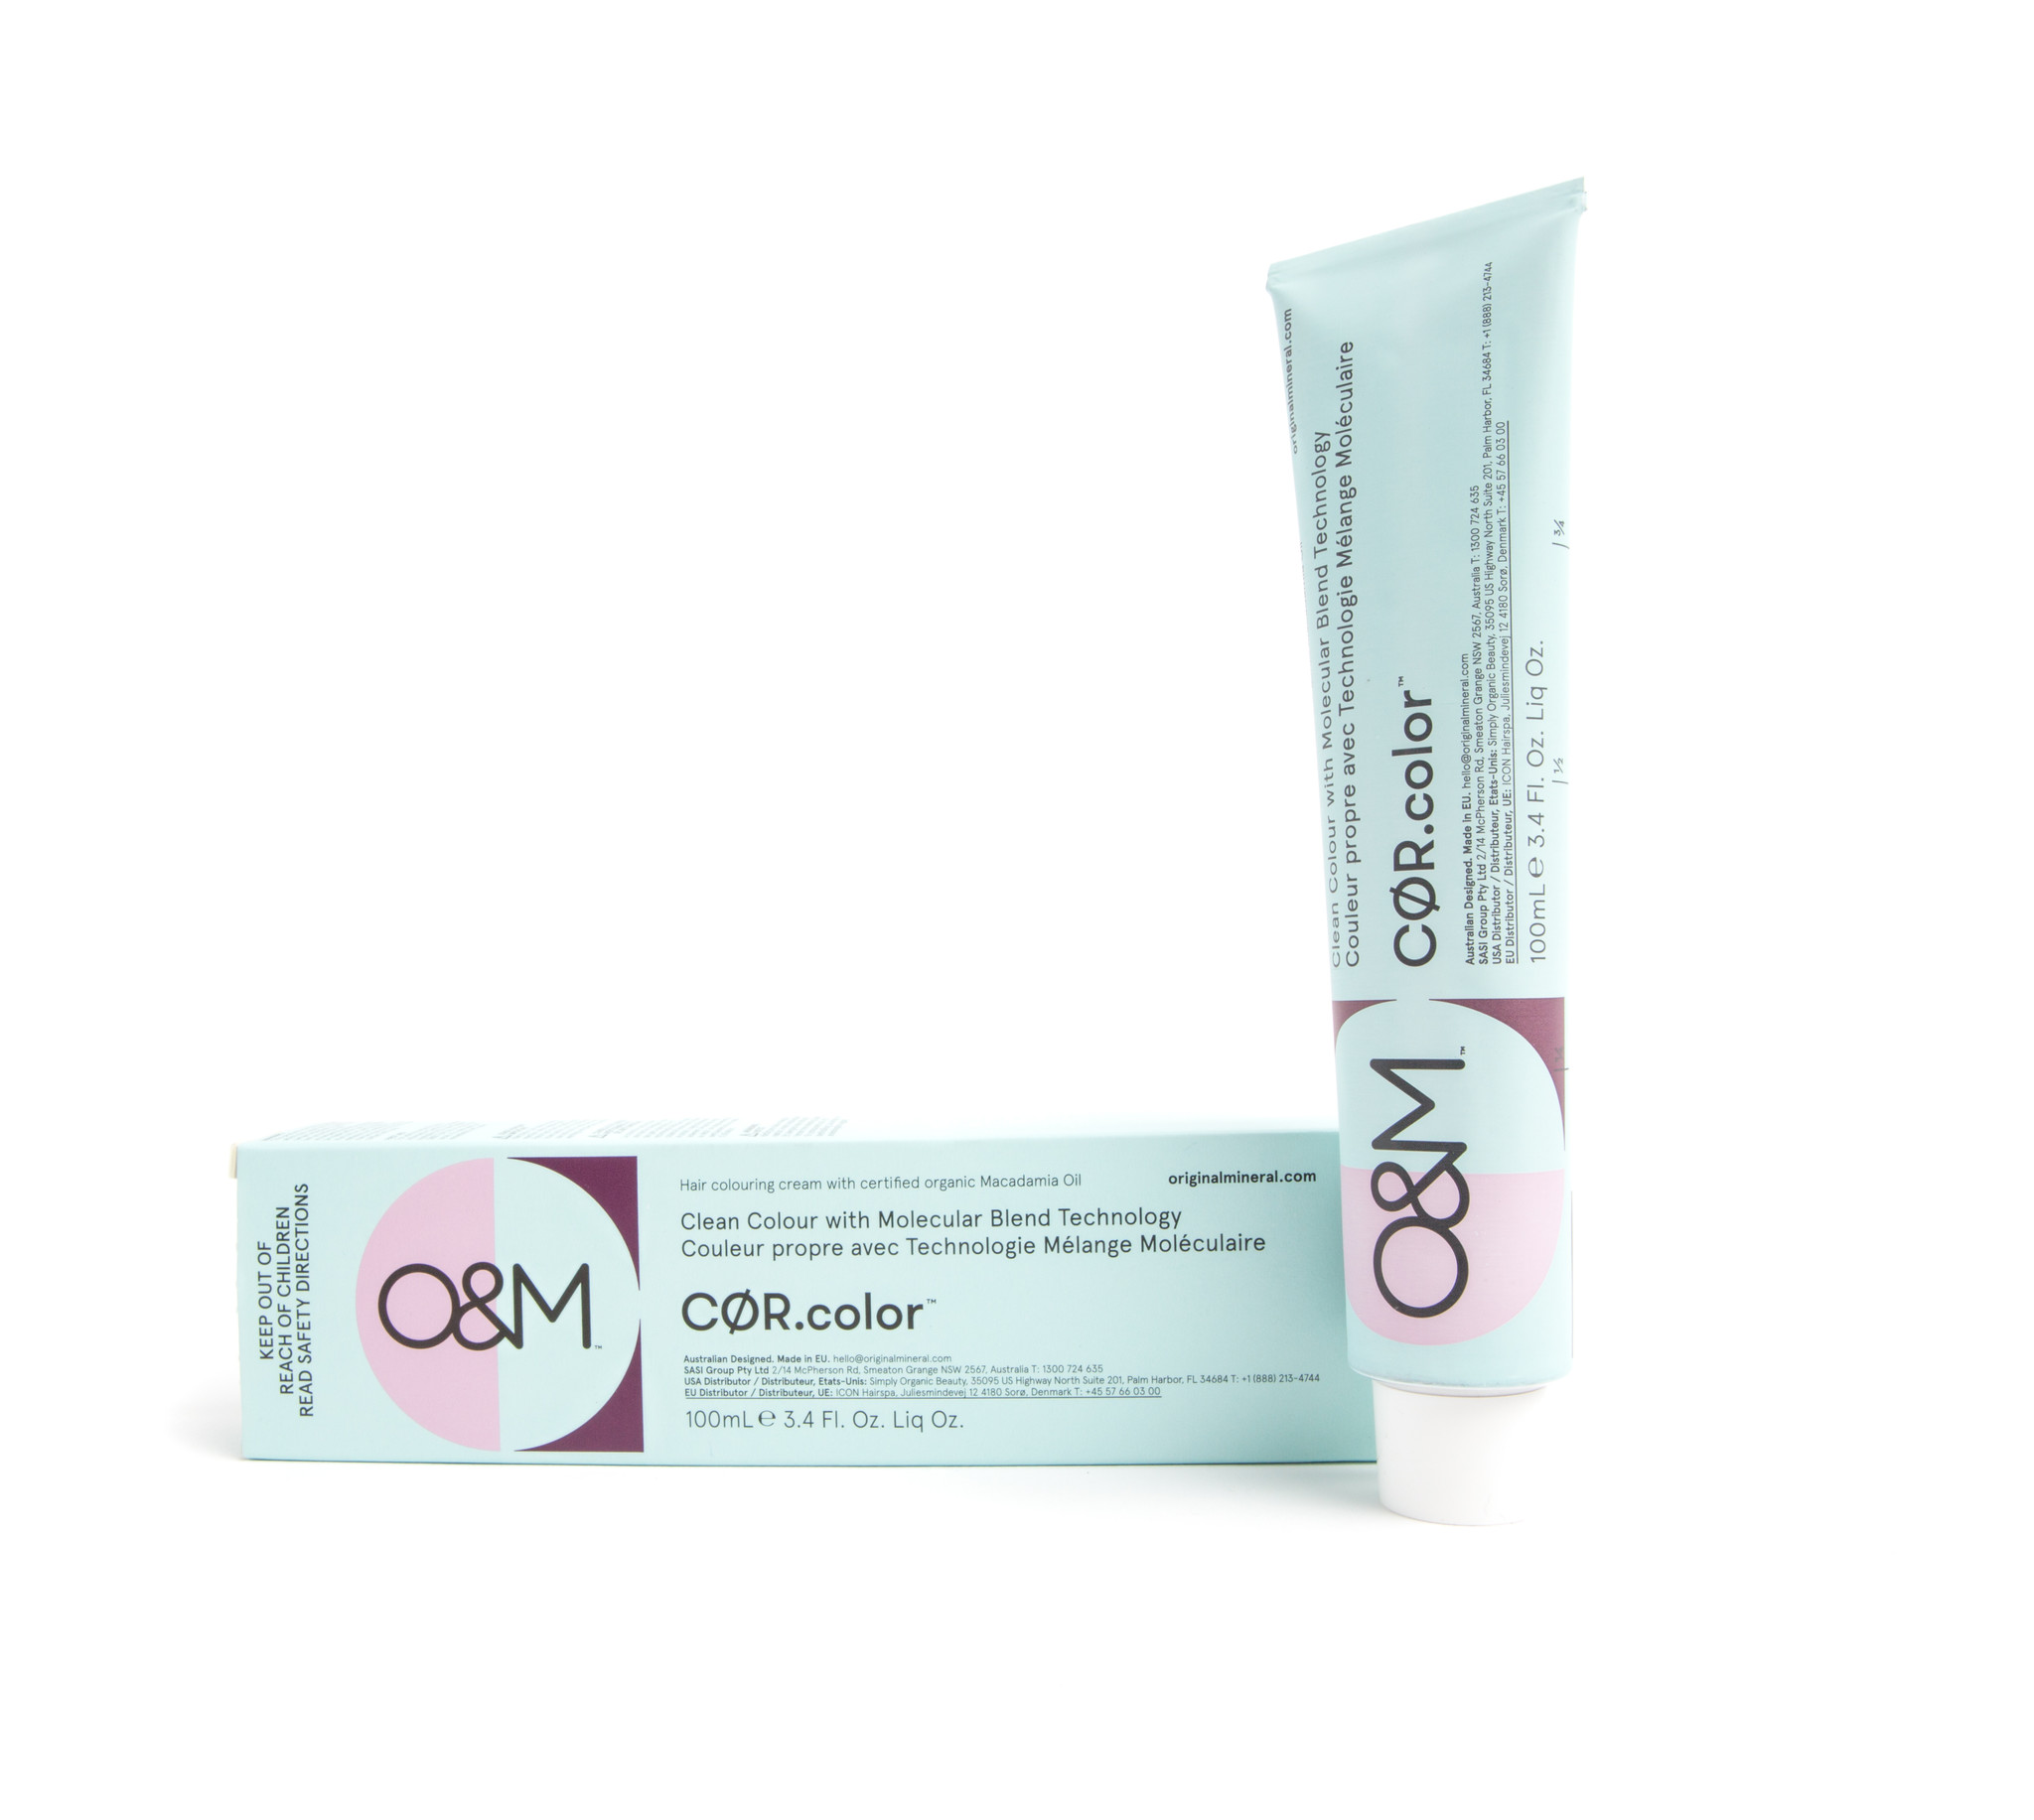 O&M - Original Mineral O&M CØR.color Cool.Naturals Ash Matte Brown 44.19 100g